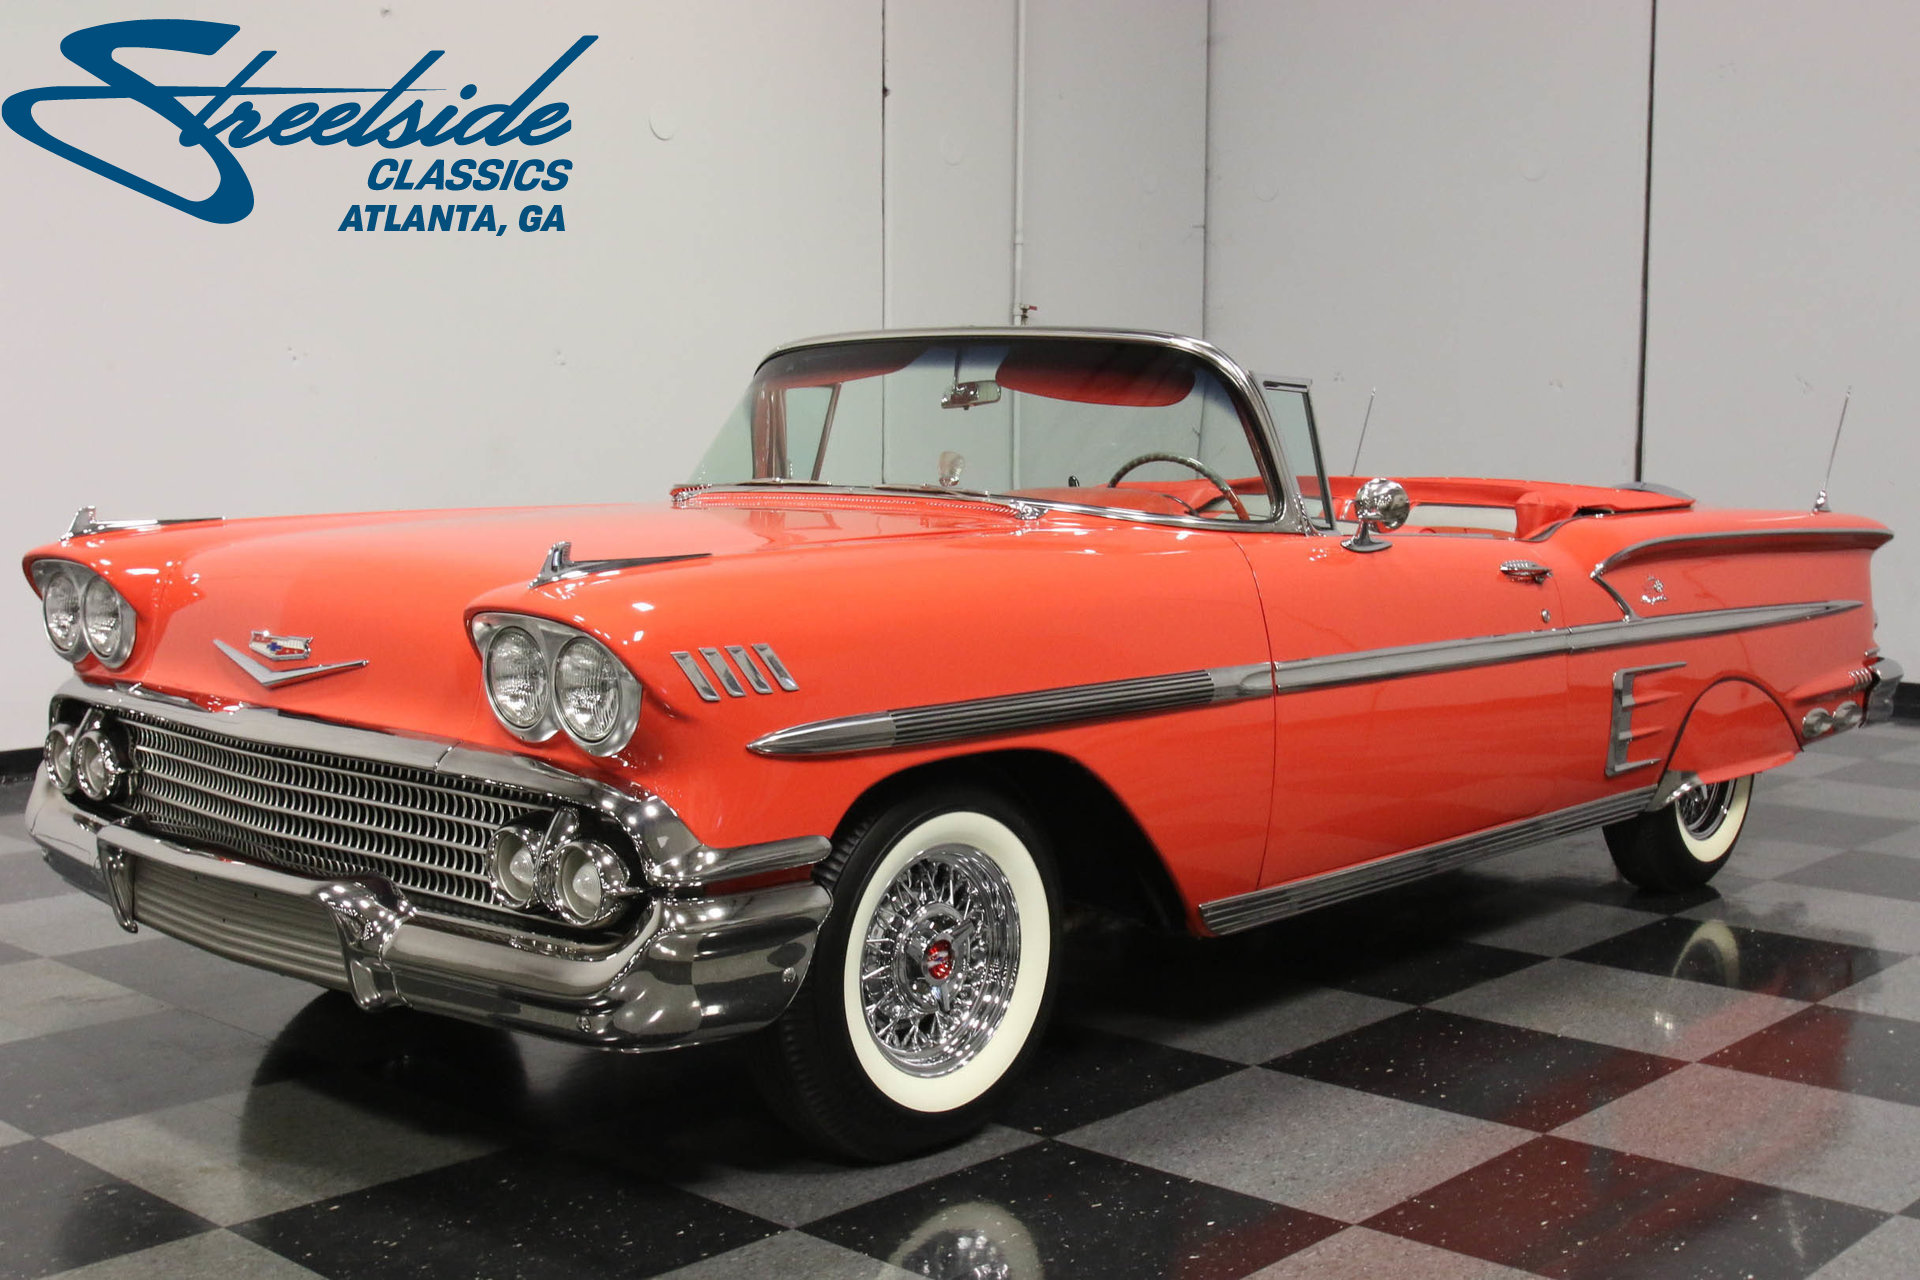 1958 Chevrolet Impala Streetside Classics The Nations Trusted 1966 Chevy Frame Play Video